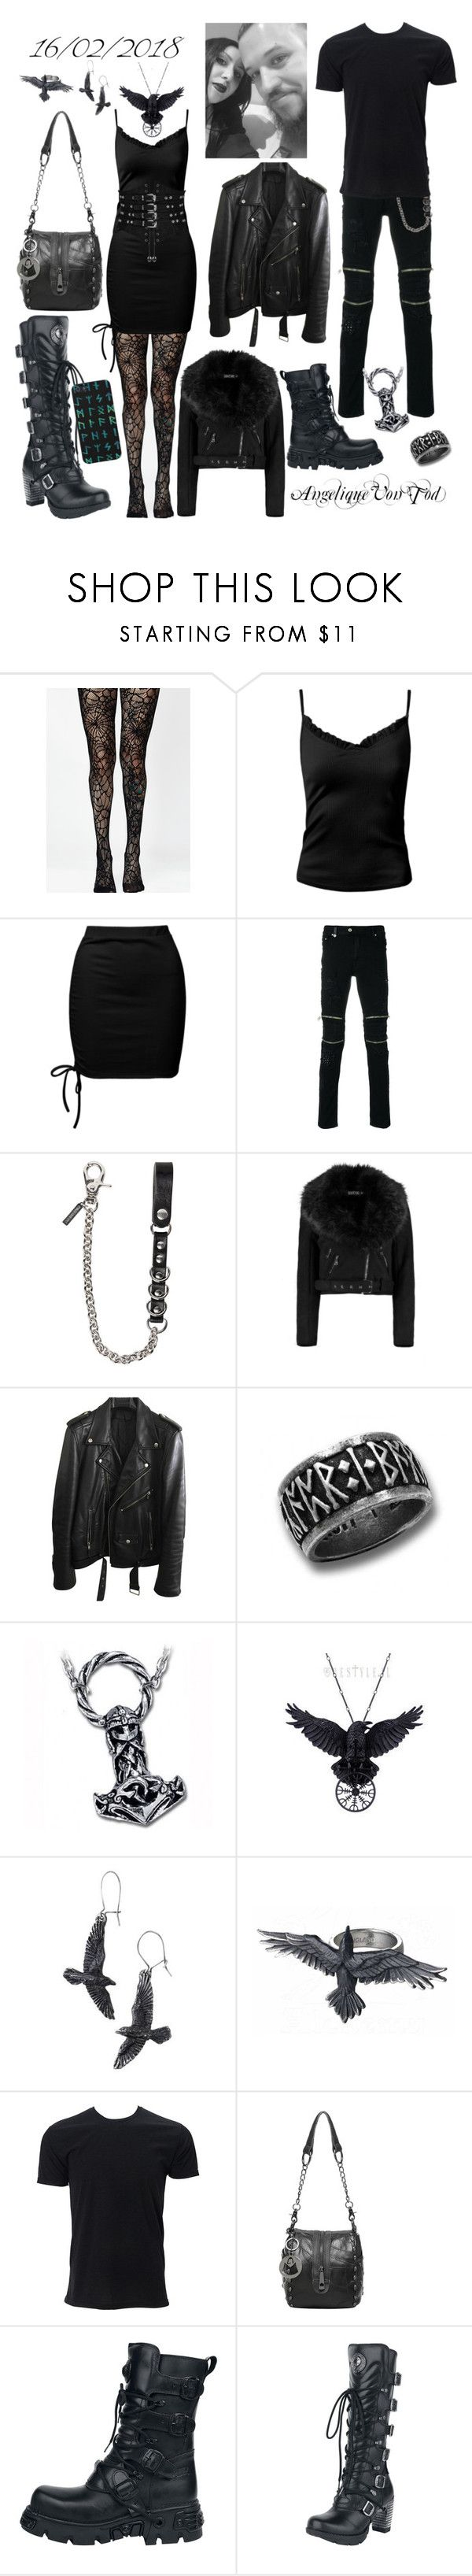 """Viking Metal"" by angelique-von-tod ❤ liked on Polyvore featuring Killstar, Sans Souci, Just Cavalli, Dsquared2, Boohoo, BLK DNM, Rune NYC and Simplex Apparel"